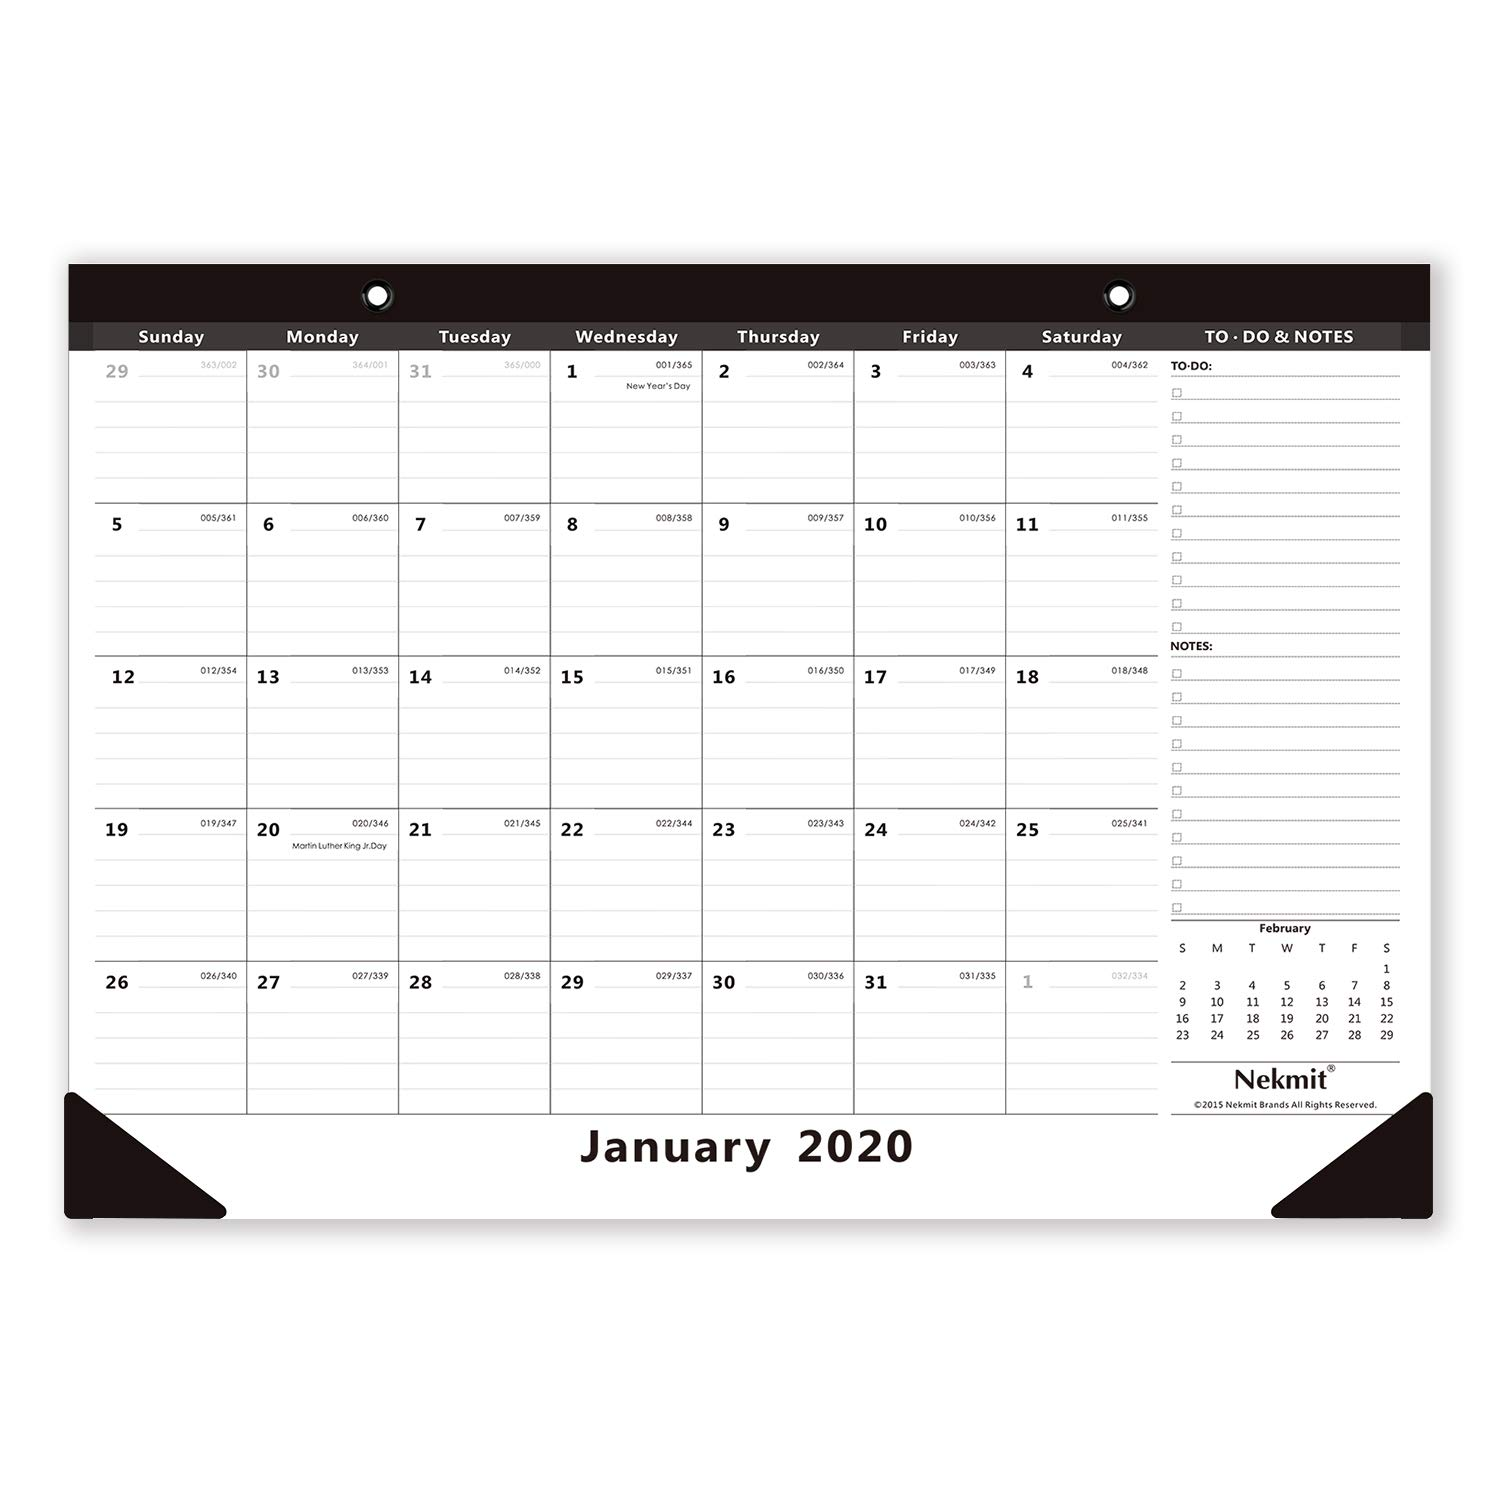 Nekmit 2020 Monthly Desk Pad Calendar - Things You Should Have on Your Office Desk